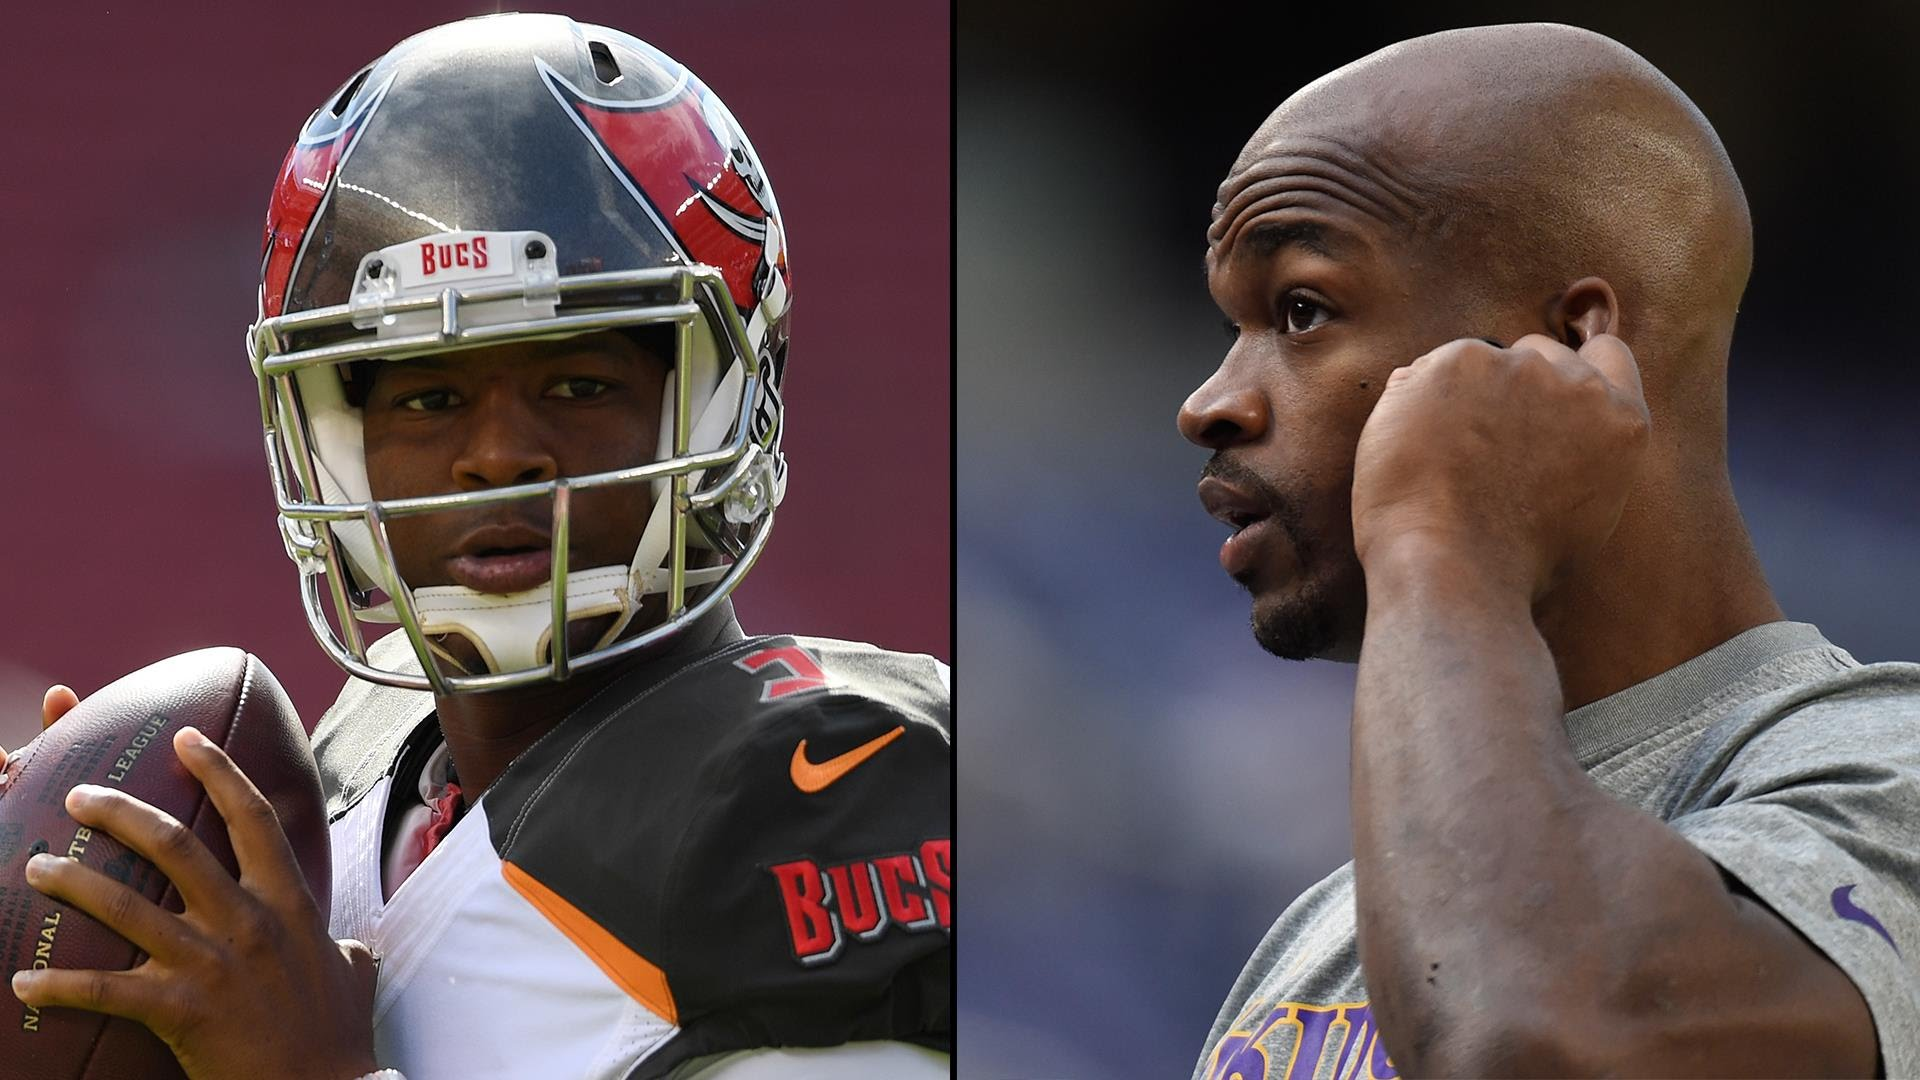 Bucs QB Jameis Winston 'absolutely' would like to play with Adrian Peterson